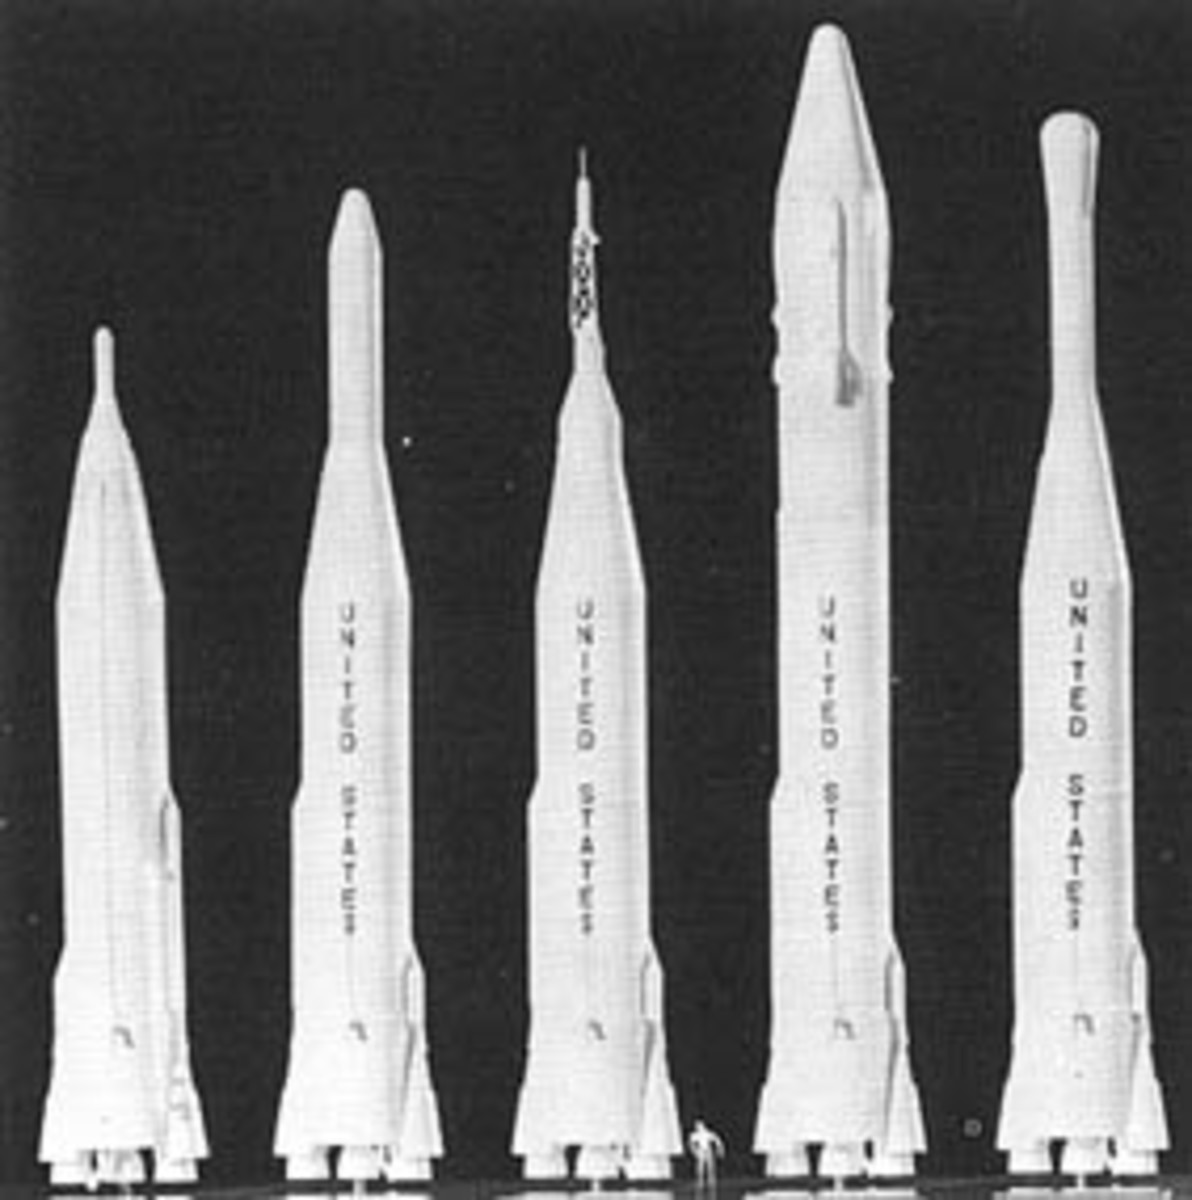 Various Atlas rocket configurations. The second from the left was the Atlas-Agena configuration used on Mariner 2.